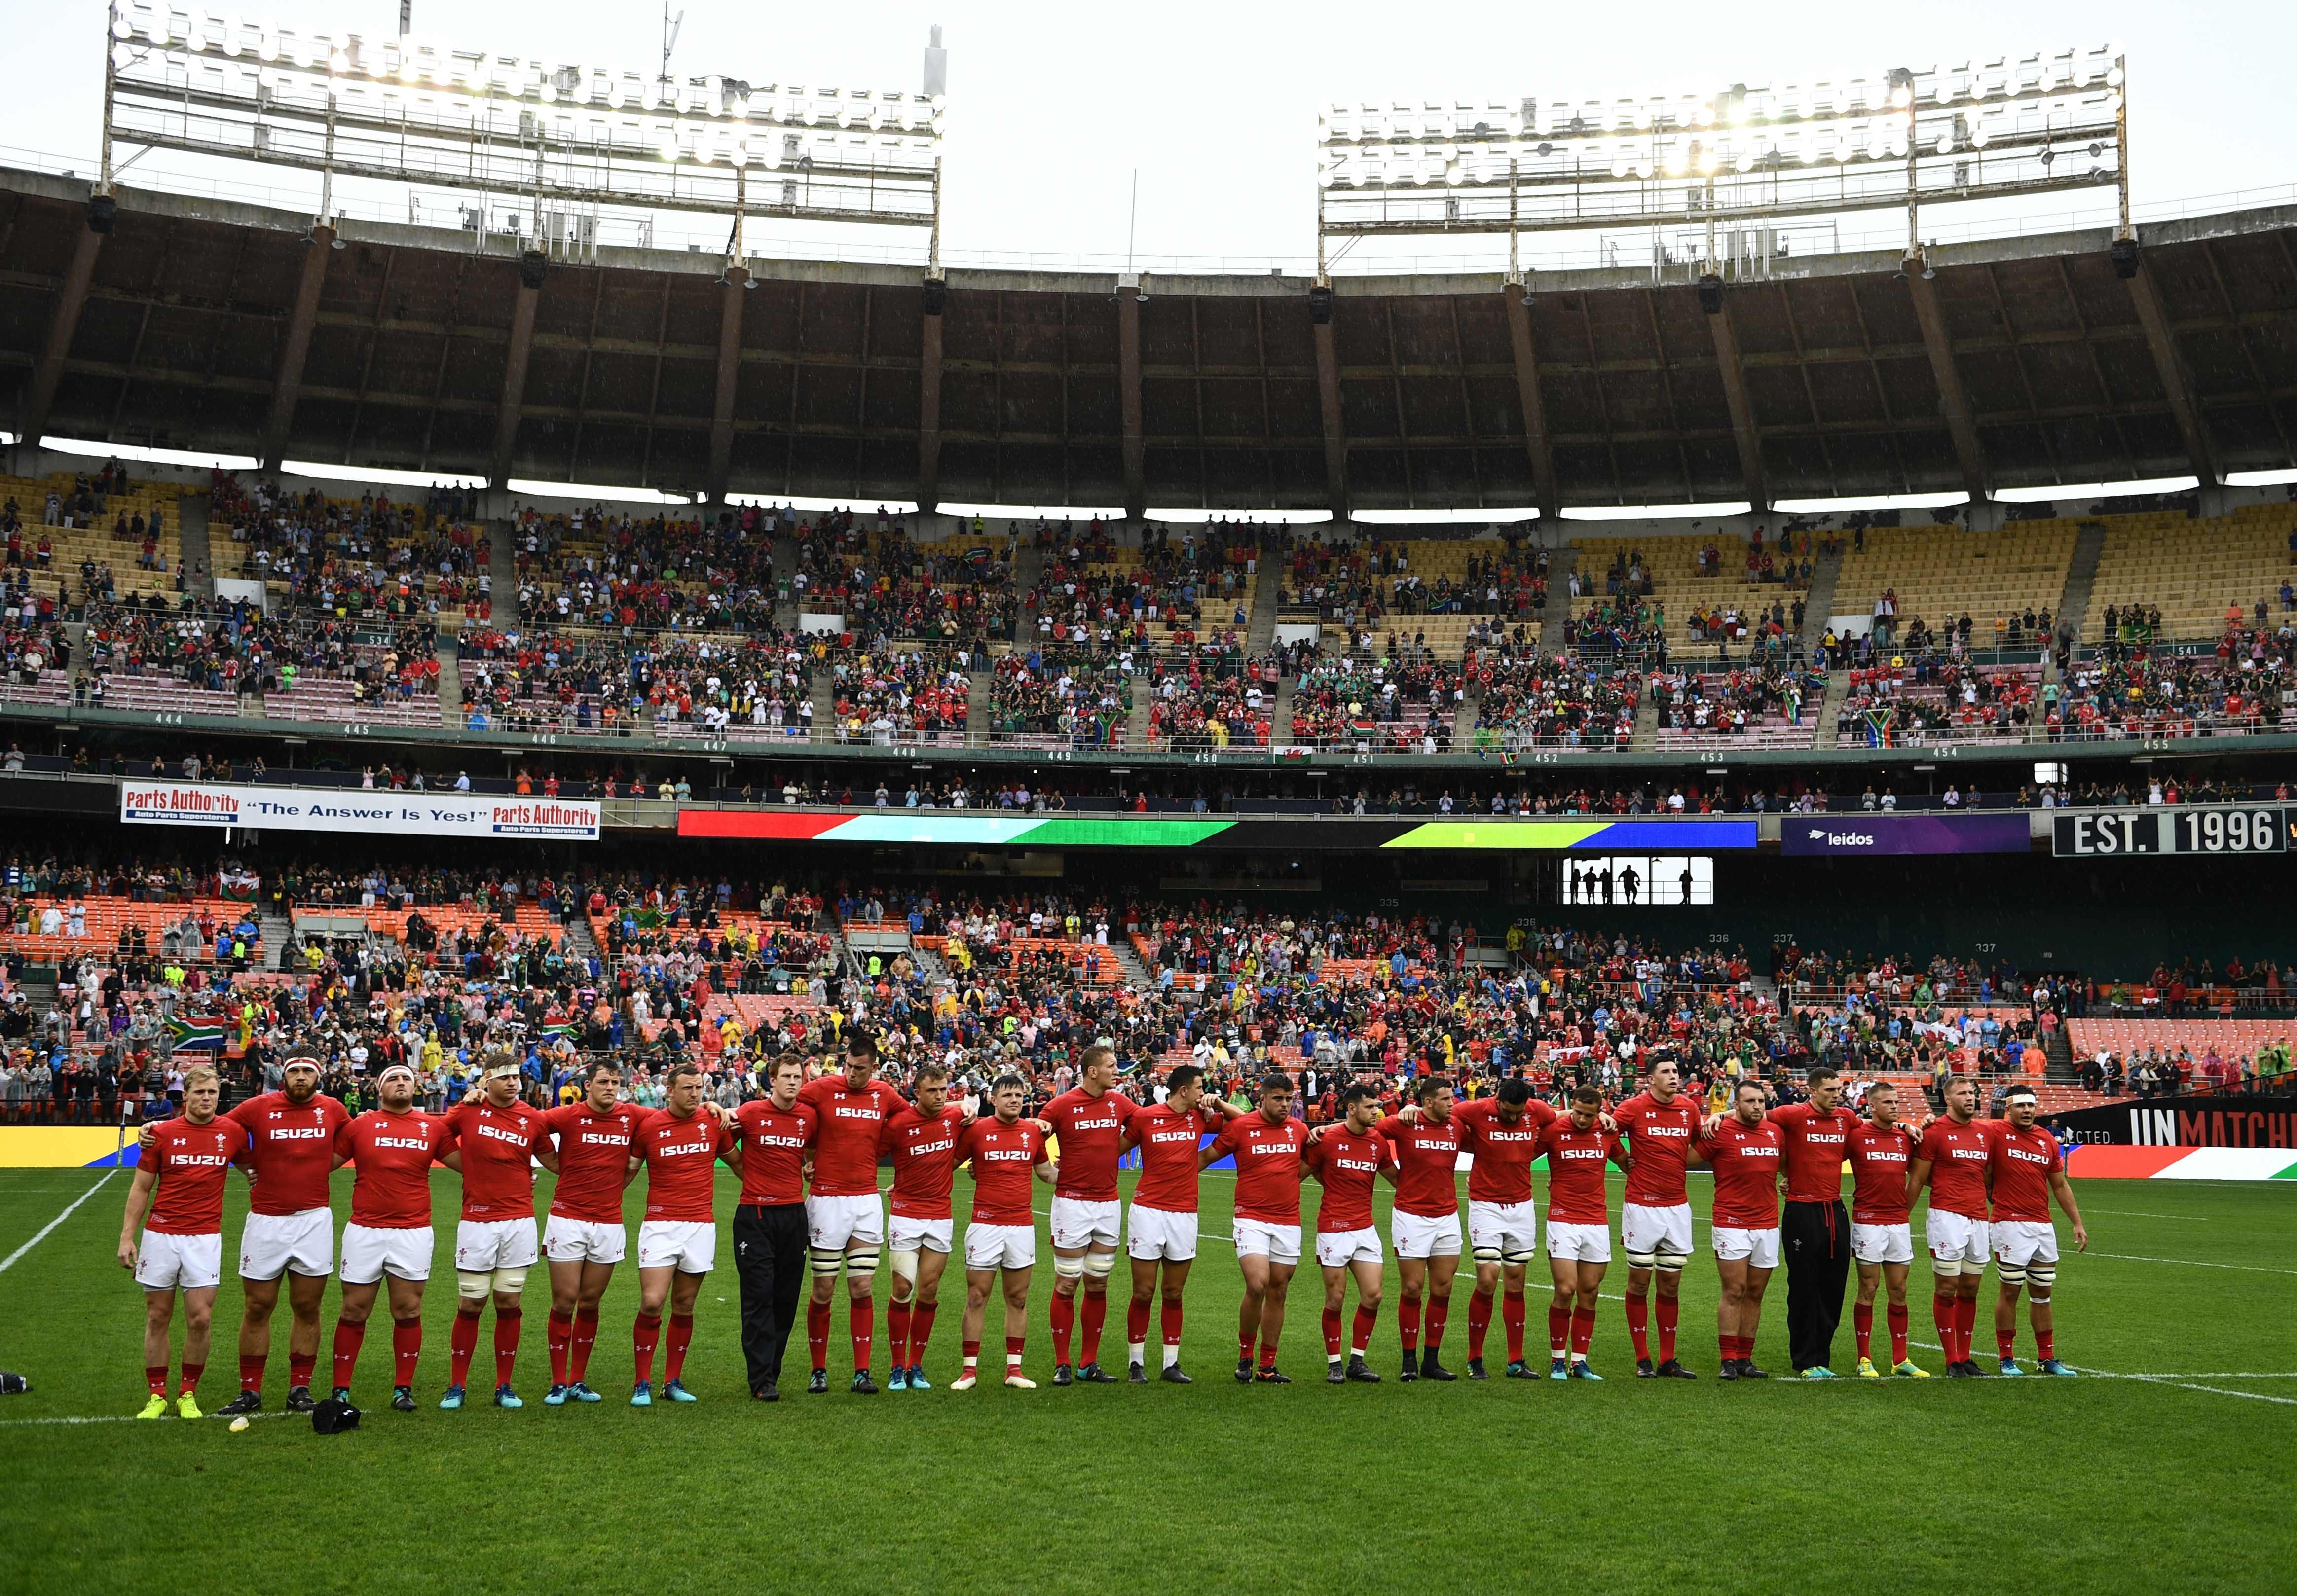 Wales beat South Africa for the first time away from Cardiff at the RFK Stadium in Washington DC